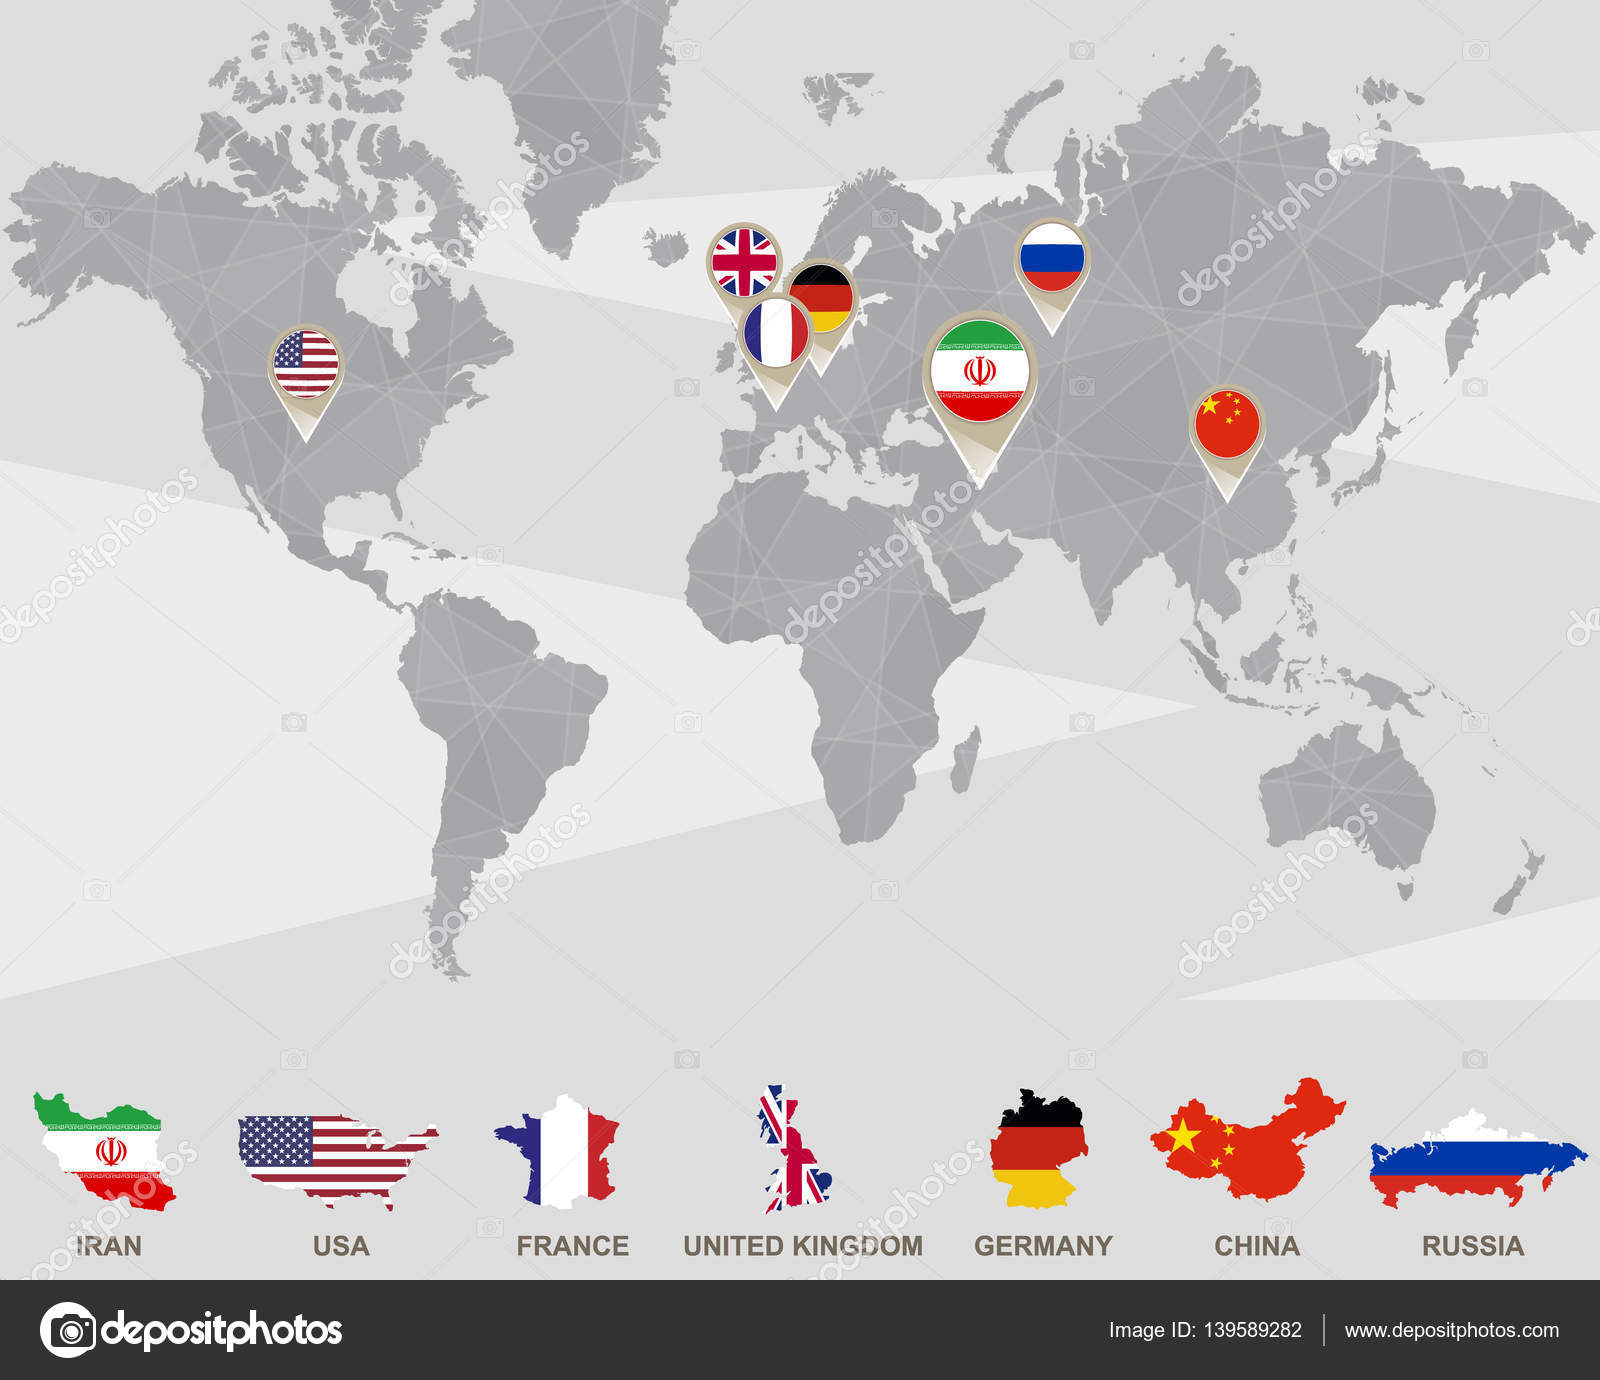 Germany On Map Of World.World Map With Iran Usa France Uk Germany China Russia